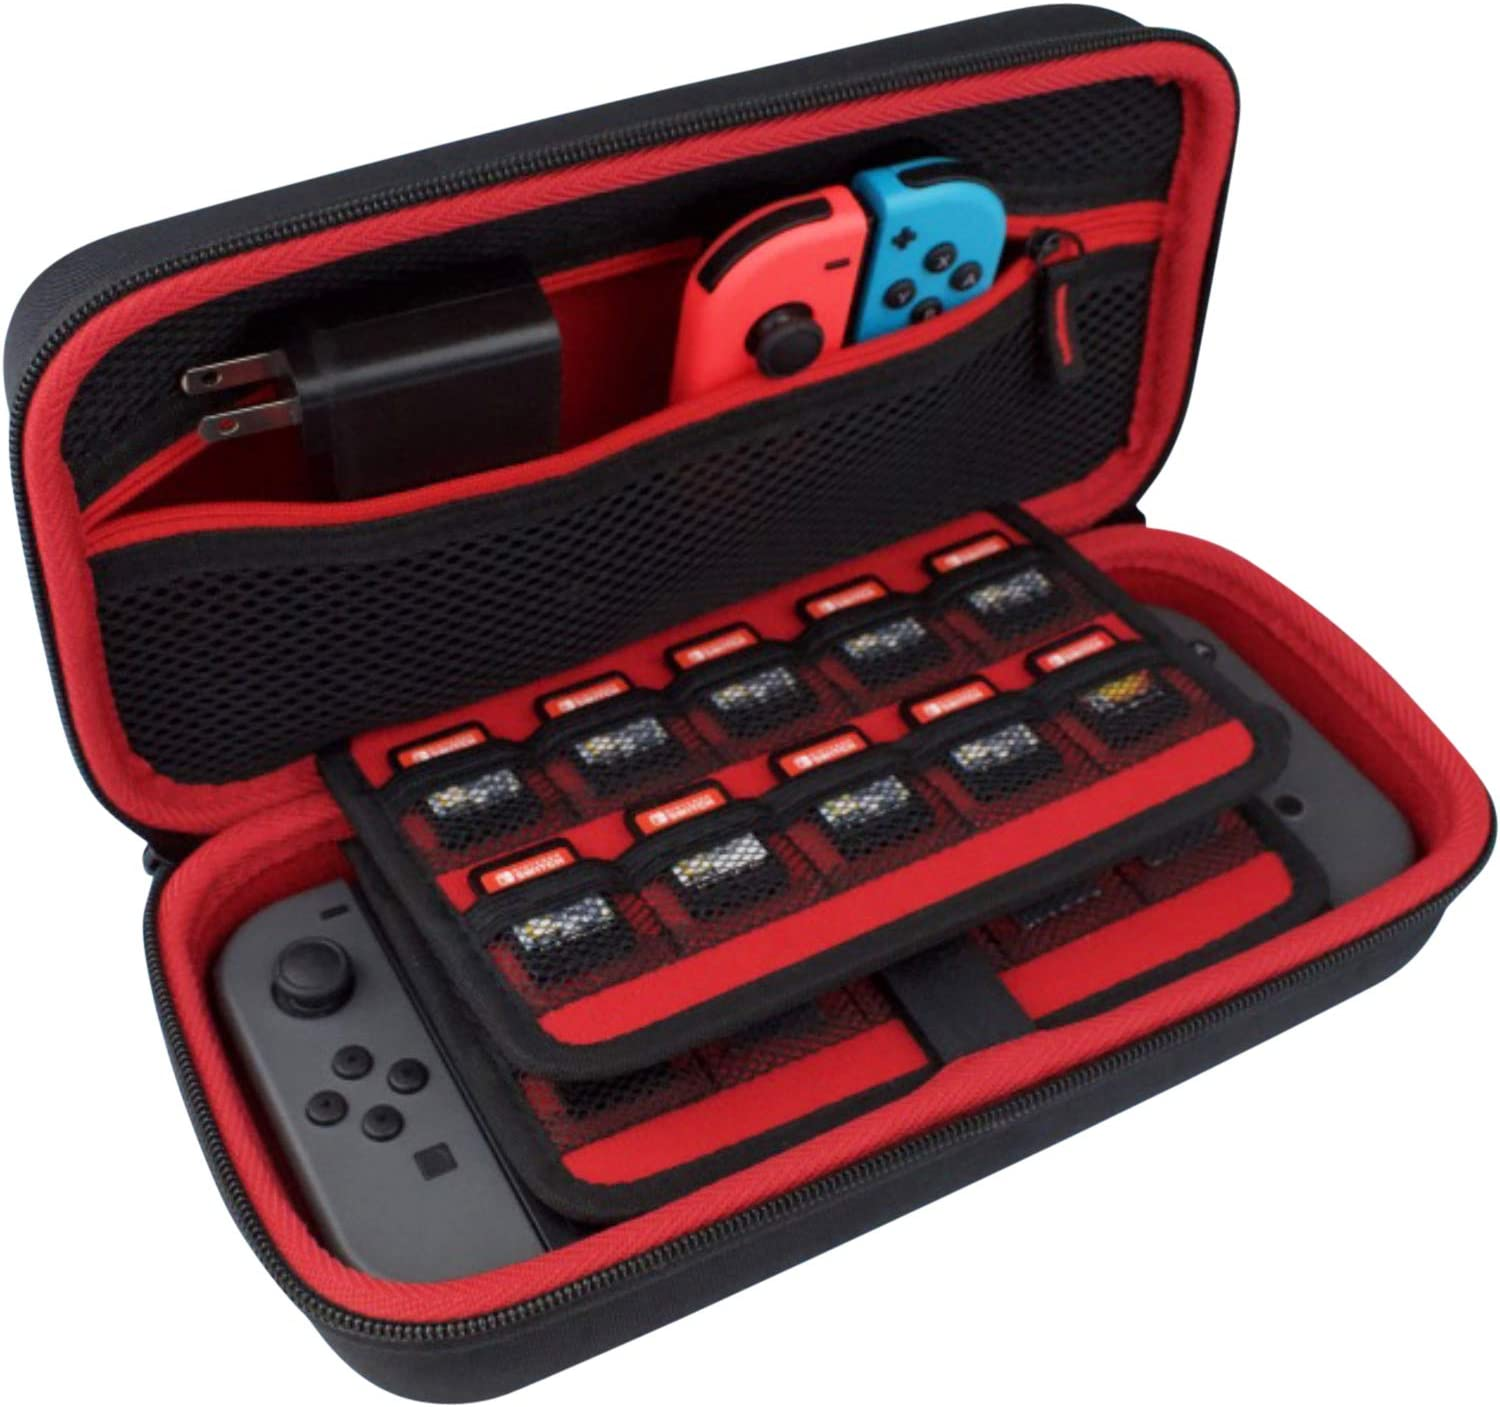 TAKECASE Nintendo Switch Hard Case, Fits Adapter/Charger, Includes 19 Game Card Storage, Accessories Pouch, Handle, Nintendo Switch Carrying Case, ...